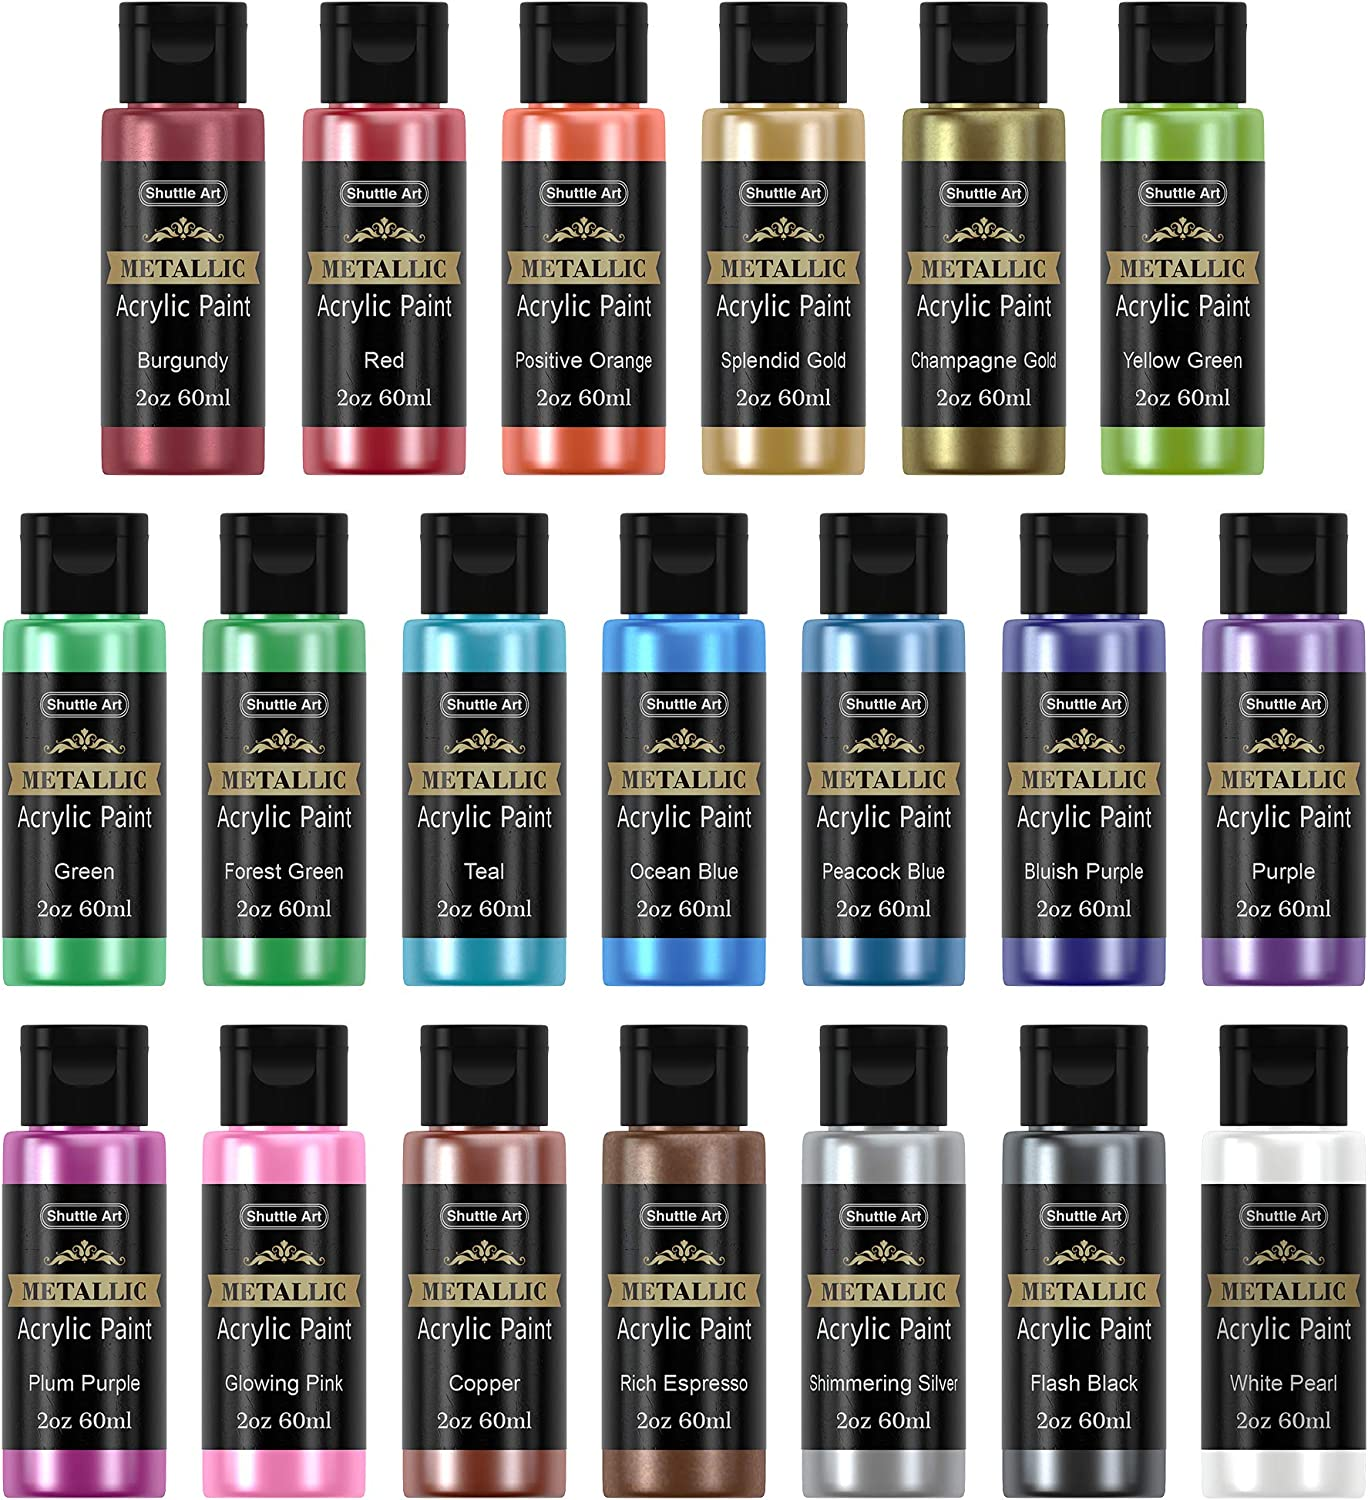 Metallic Acrylic Paint Set, Shuttle Art 20 Colors Metallic Paint in Bottles (60ml, 2oz) with 3 Brushes and 1 Palette, Rich Pigments, Non-Toxic for Artists, Beginners on Rocks Crafts CanvasWood Fabric